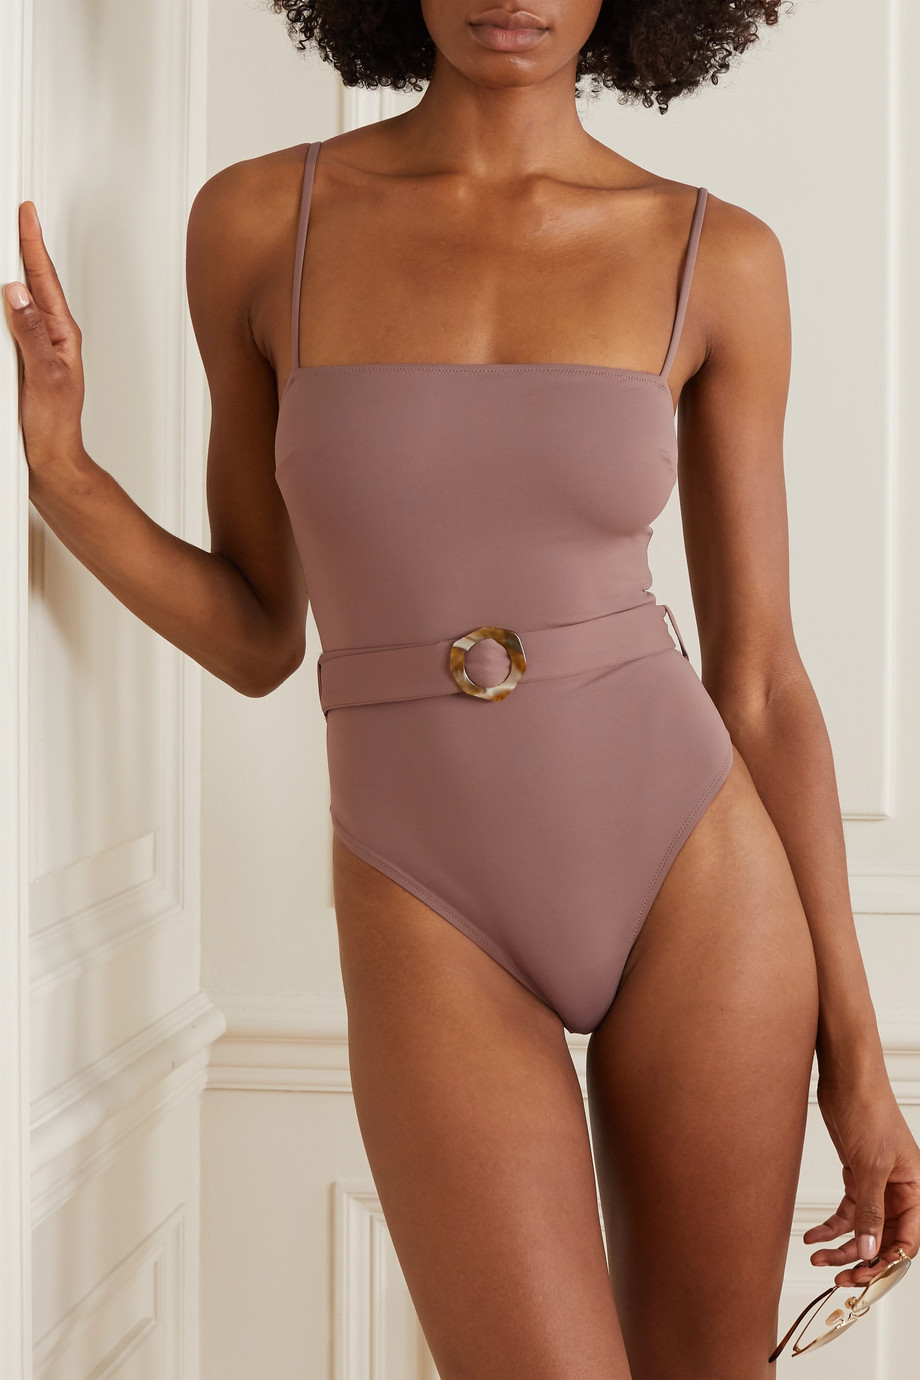 Fisch + NET SUSTAIN + Space for Giants Korina belted stretch swimsuit